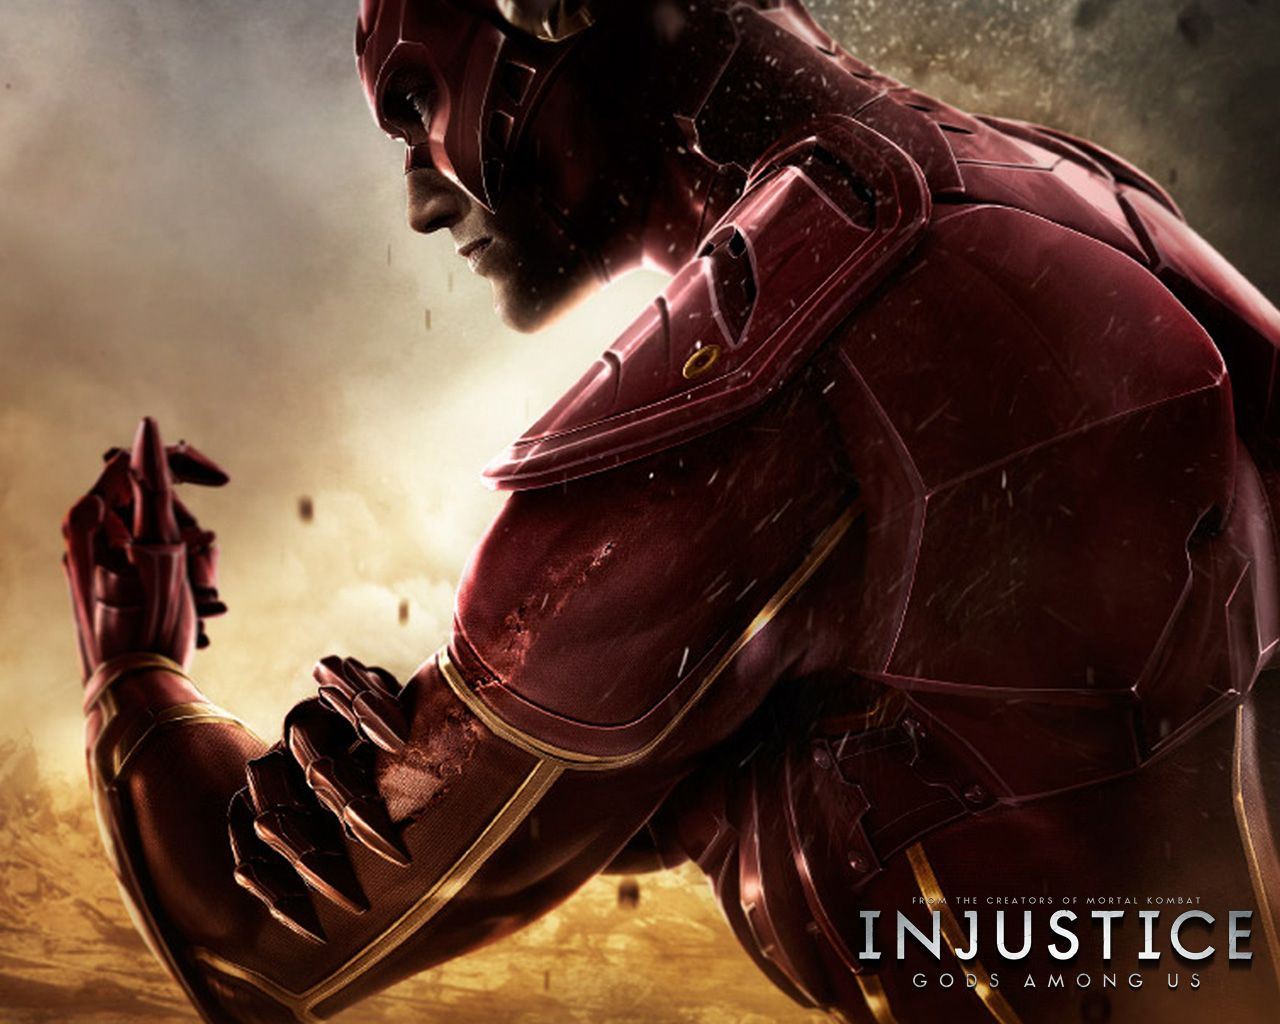 Injustice Gods Among Us The Flash Flash Characters Flash Wallpaper Injustice